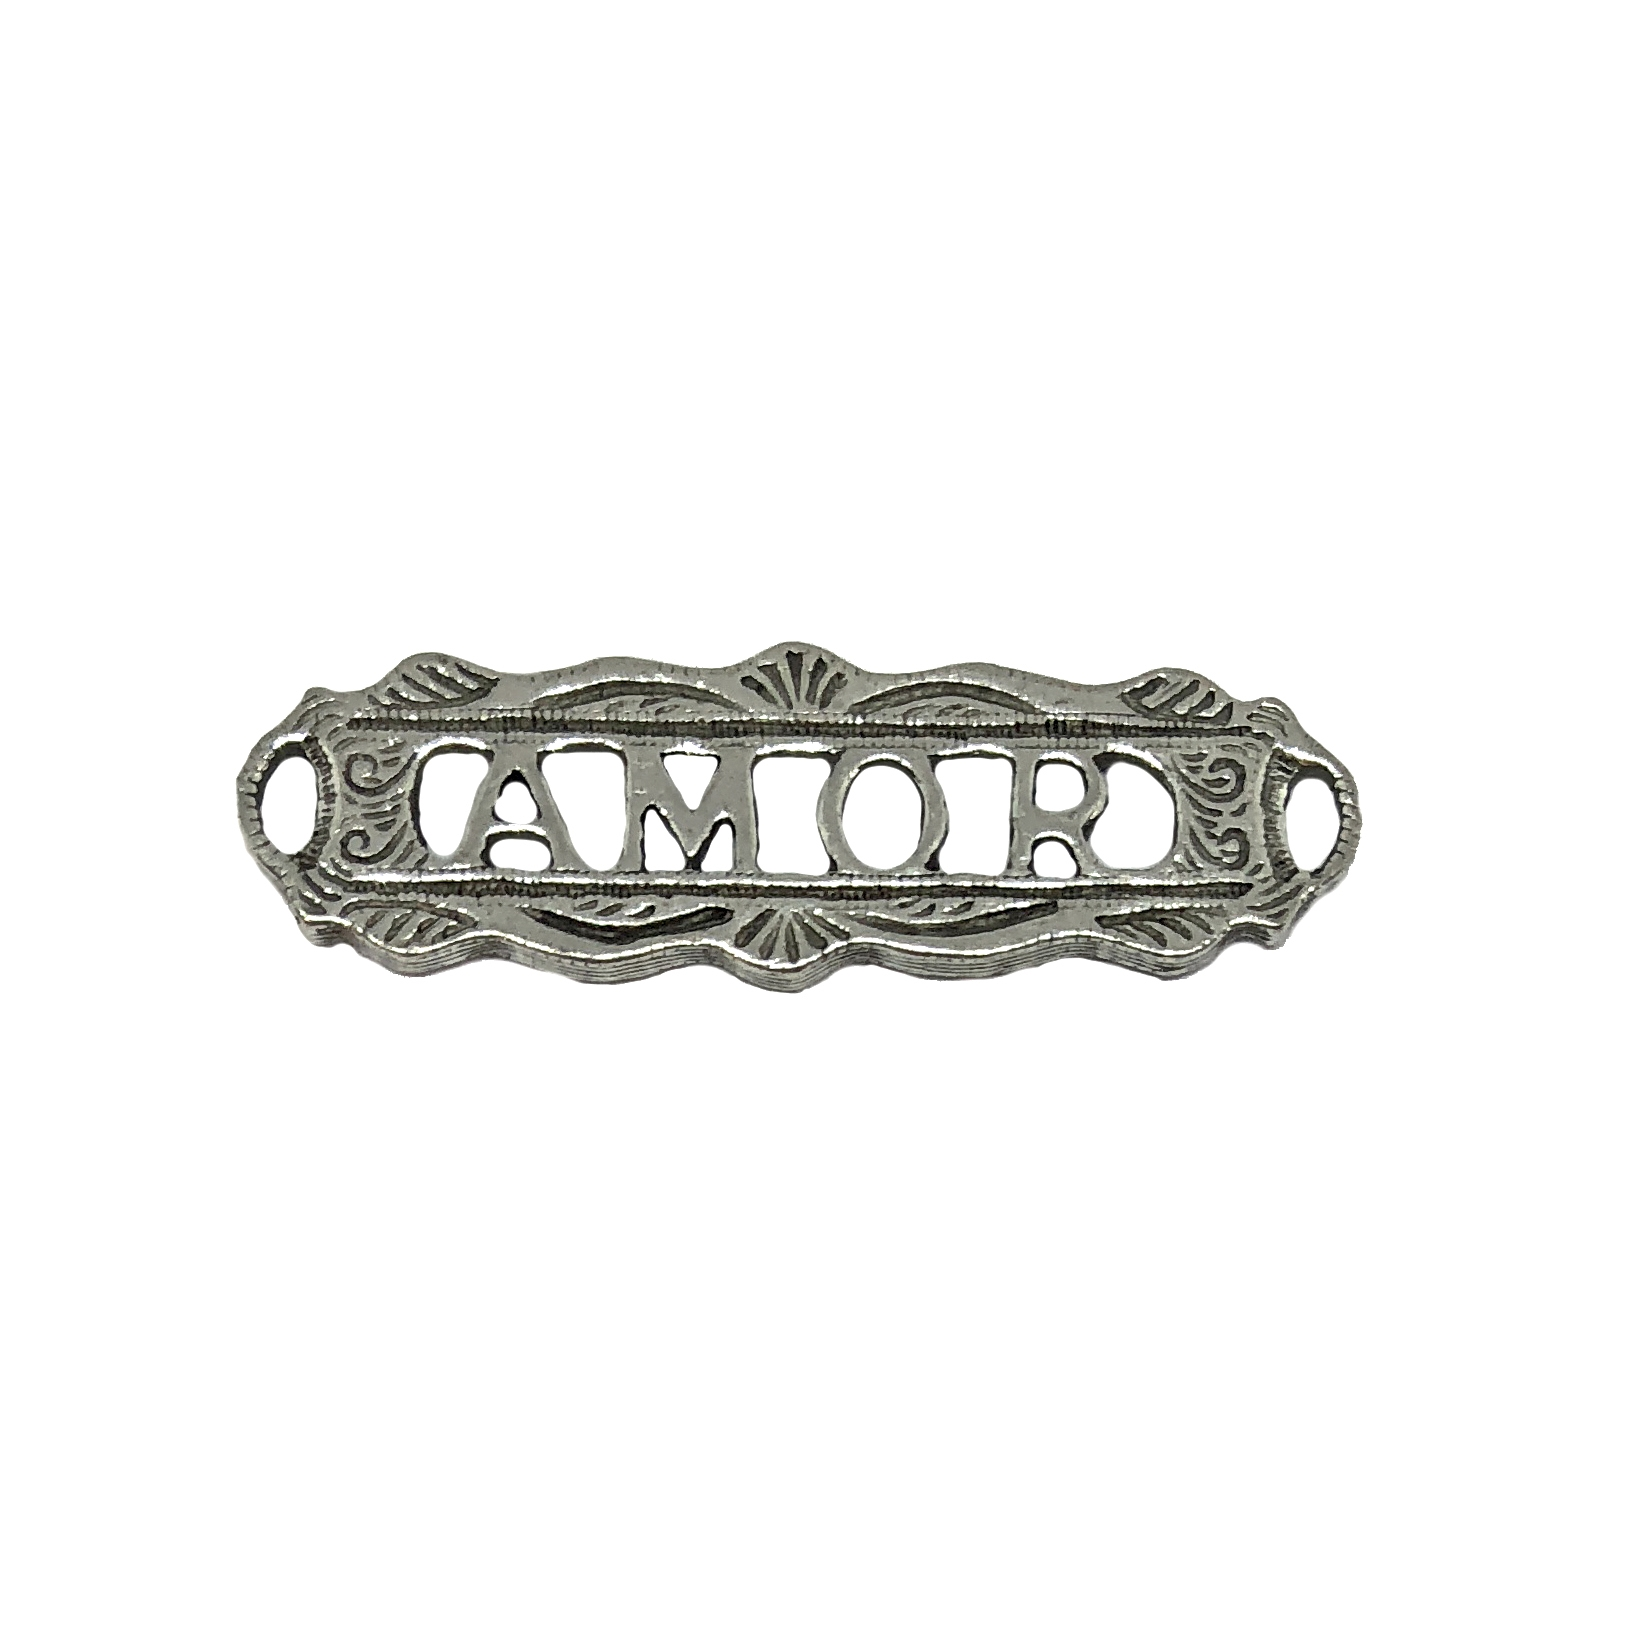 old silver, amor connector, bracelet bar, 06866, vintage, B'sue by 1928, lead free pewter castings, cast pewter jewelry findings, made in the USA, 1928 Company, B'sue Boutiques, plated pewter, jewelry supplies